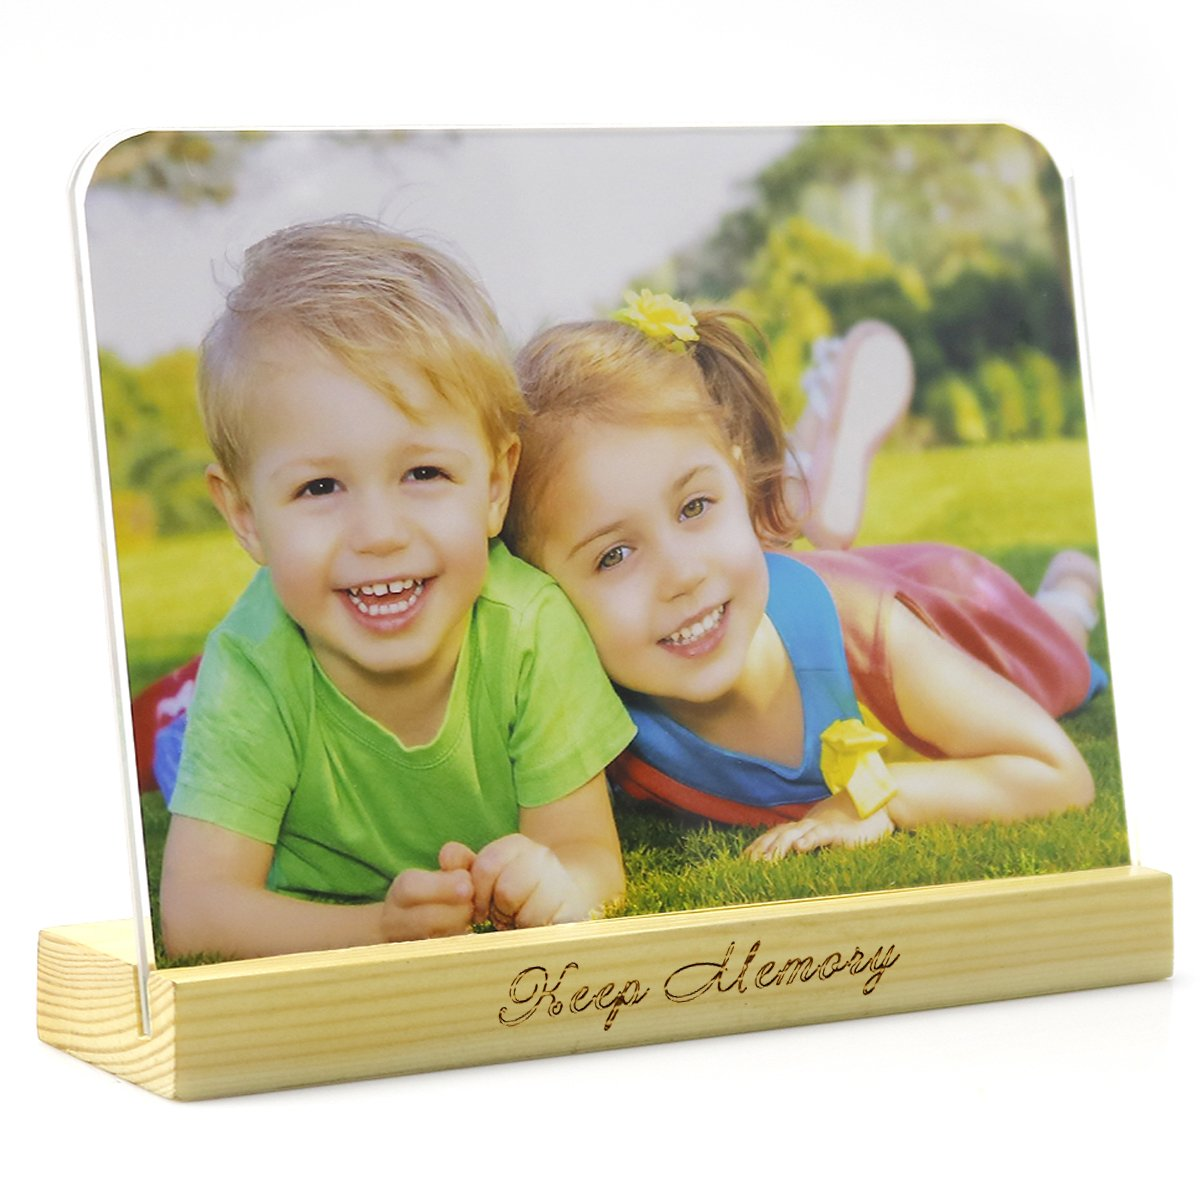 6x8 Picture Frame Round Corner Clear Photo Frame Desk Calendar Display and Wood Holder - Clear Acrylic Glass Picture Frame and Solid Wood Holder - Photo Display Stand on Desktop - SupperAcrylic